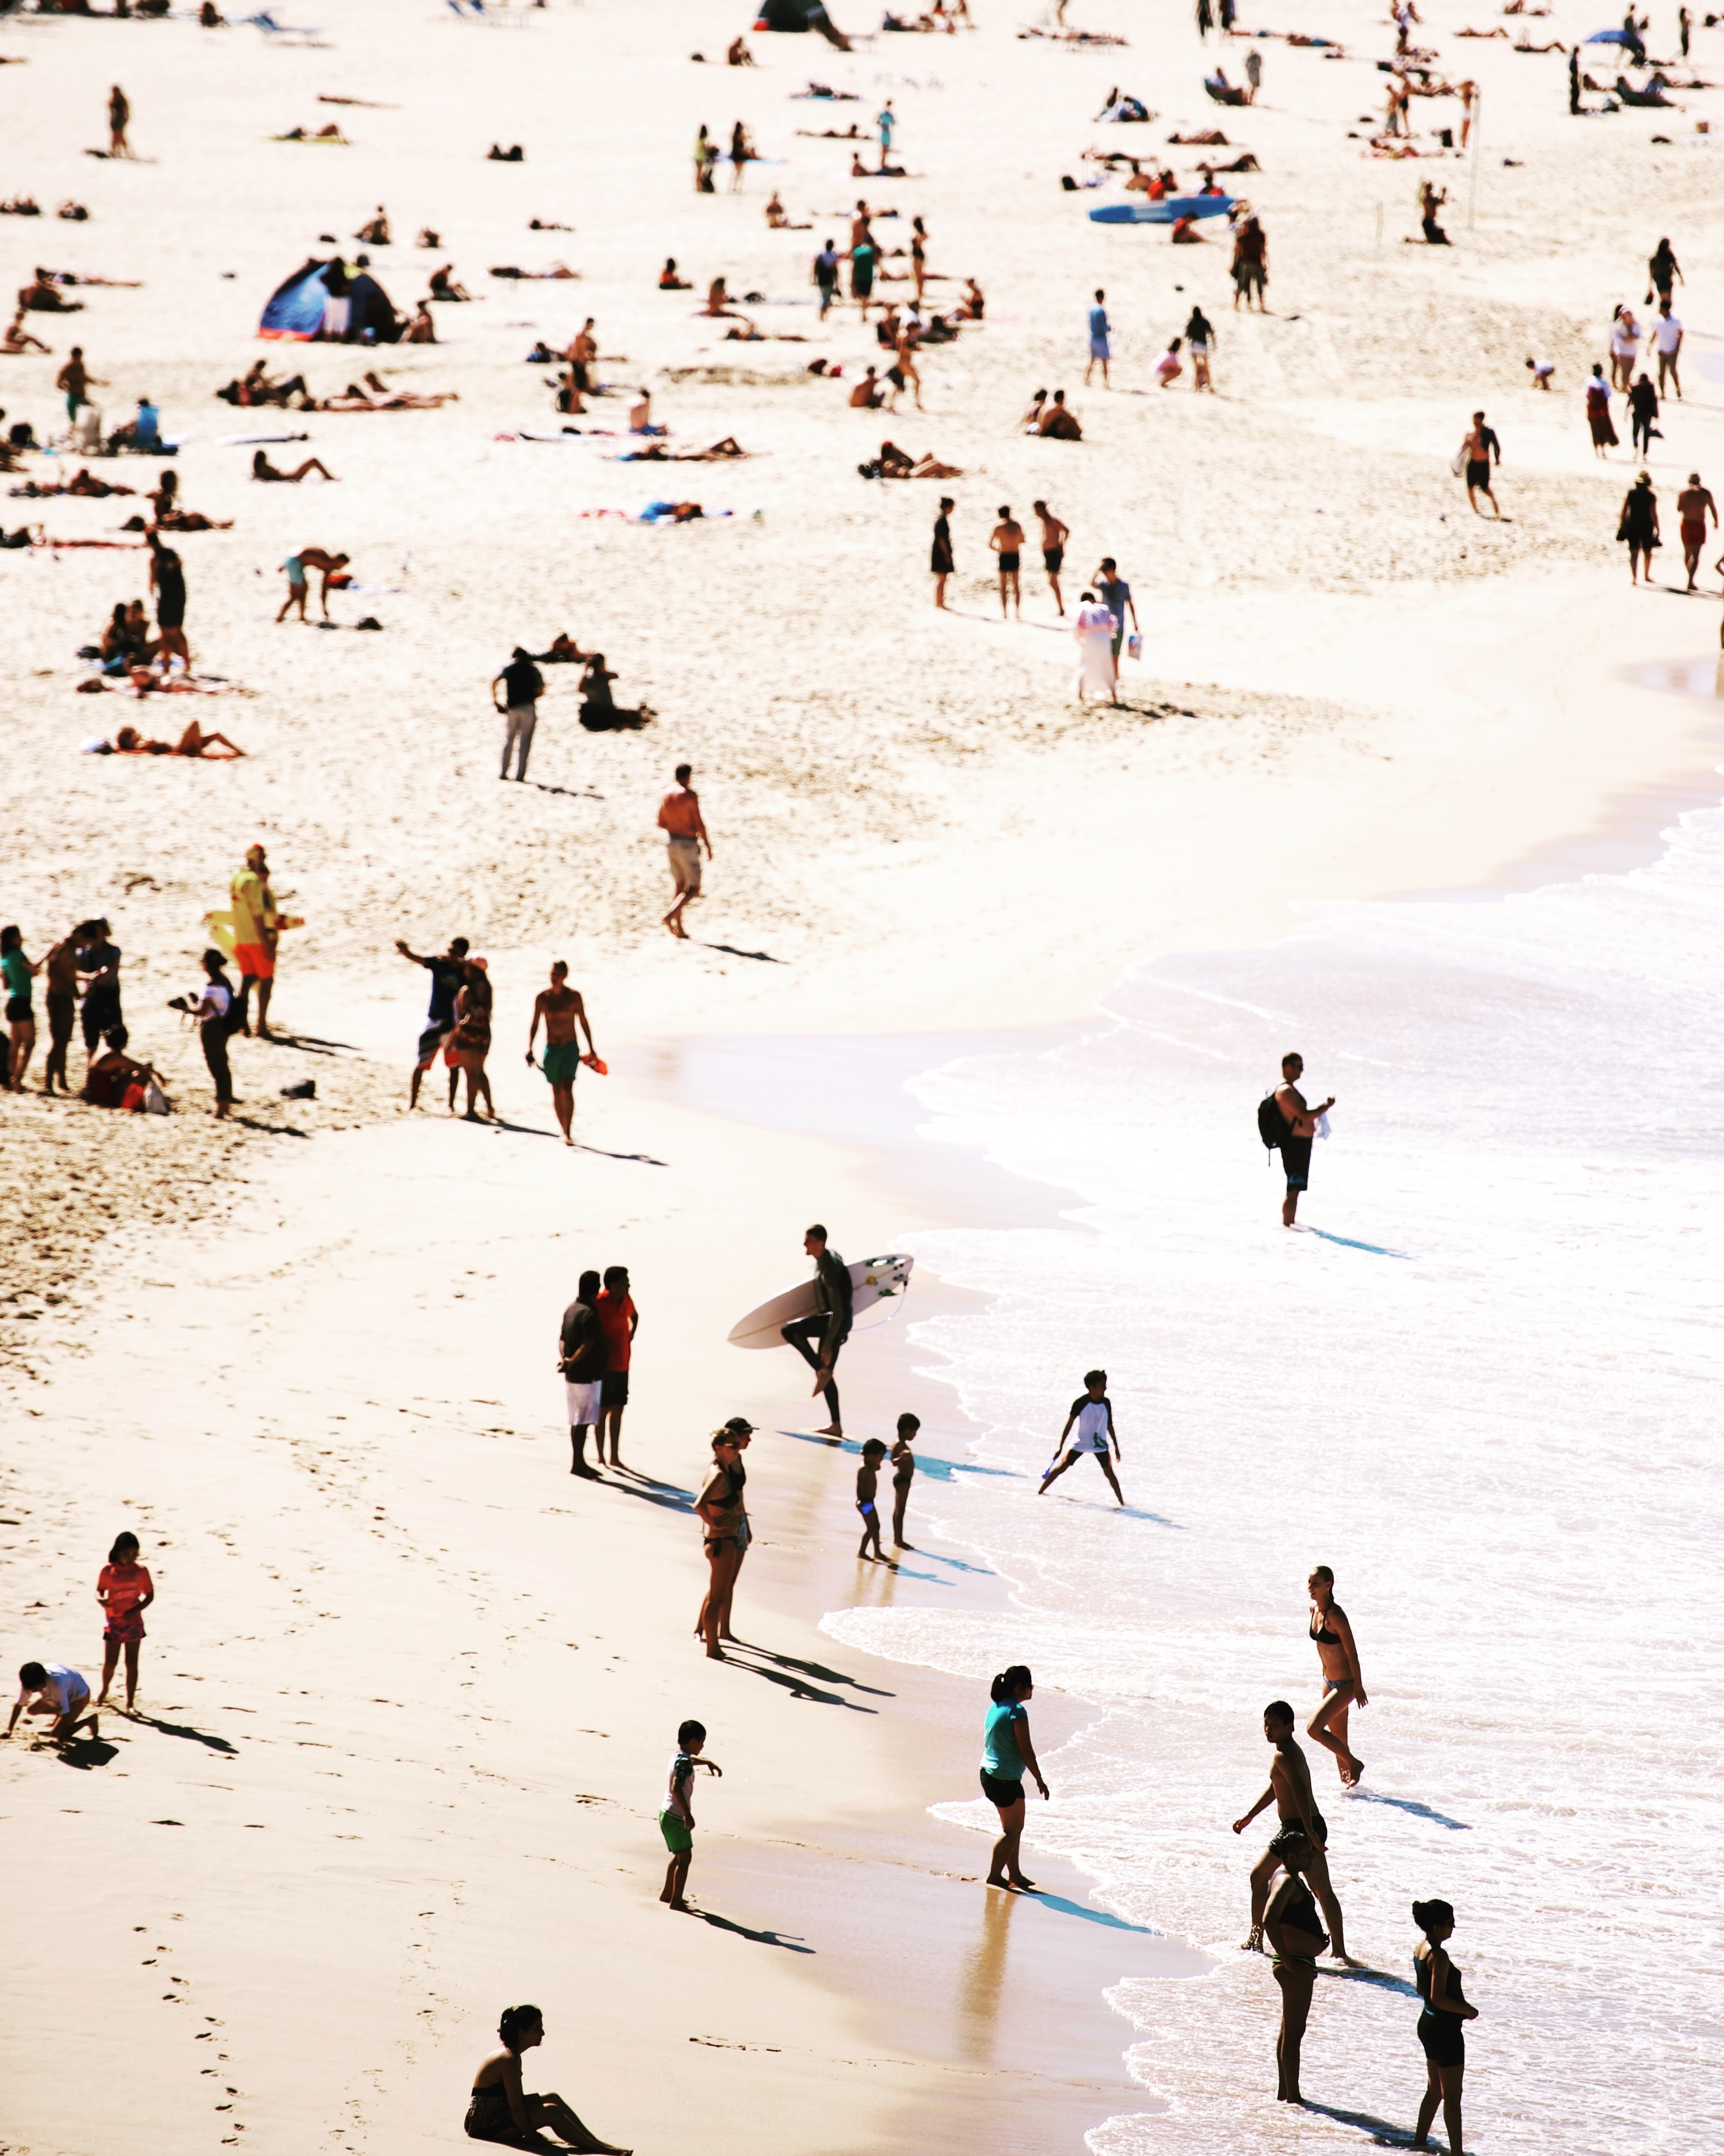 A high-angle shot of a crowded beach in the summertime